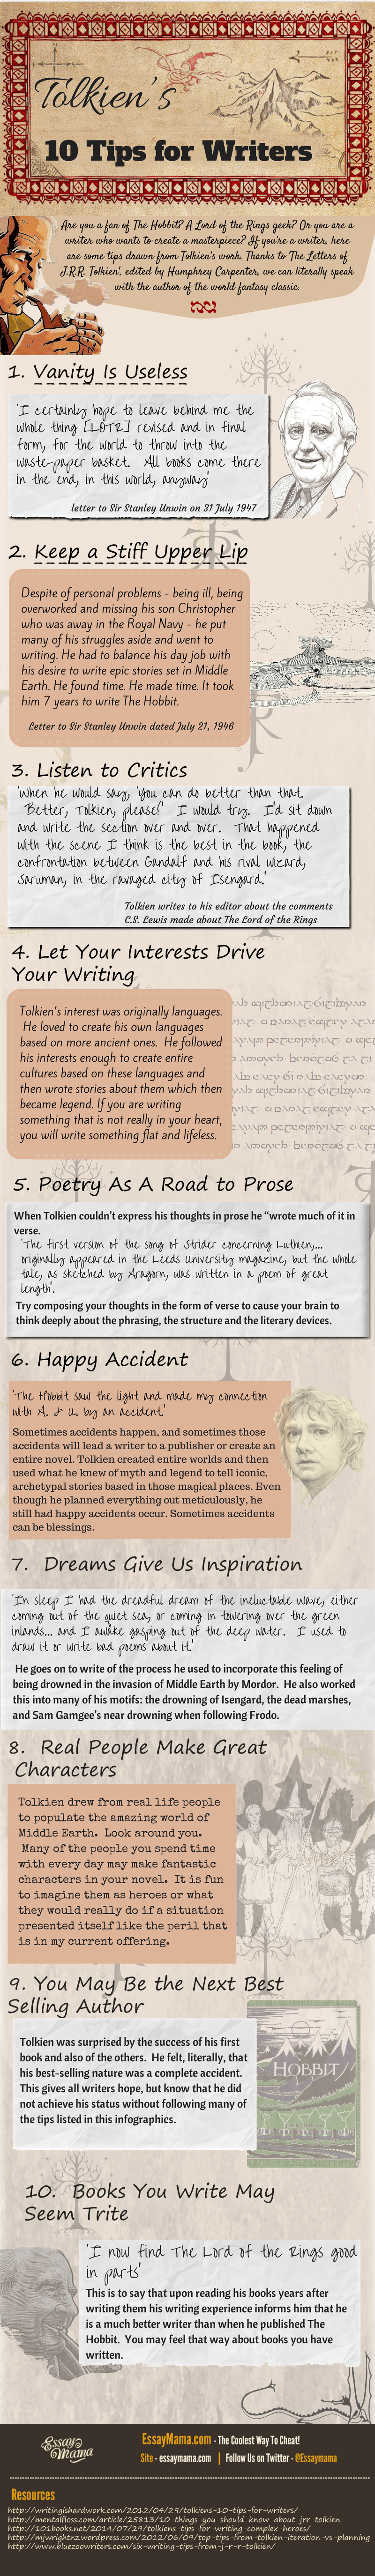 Writing Tips Infographic